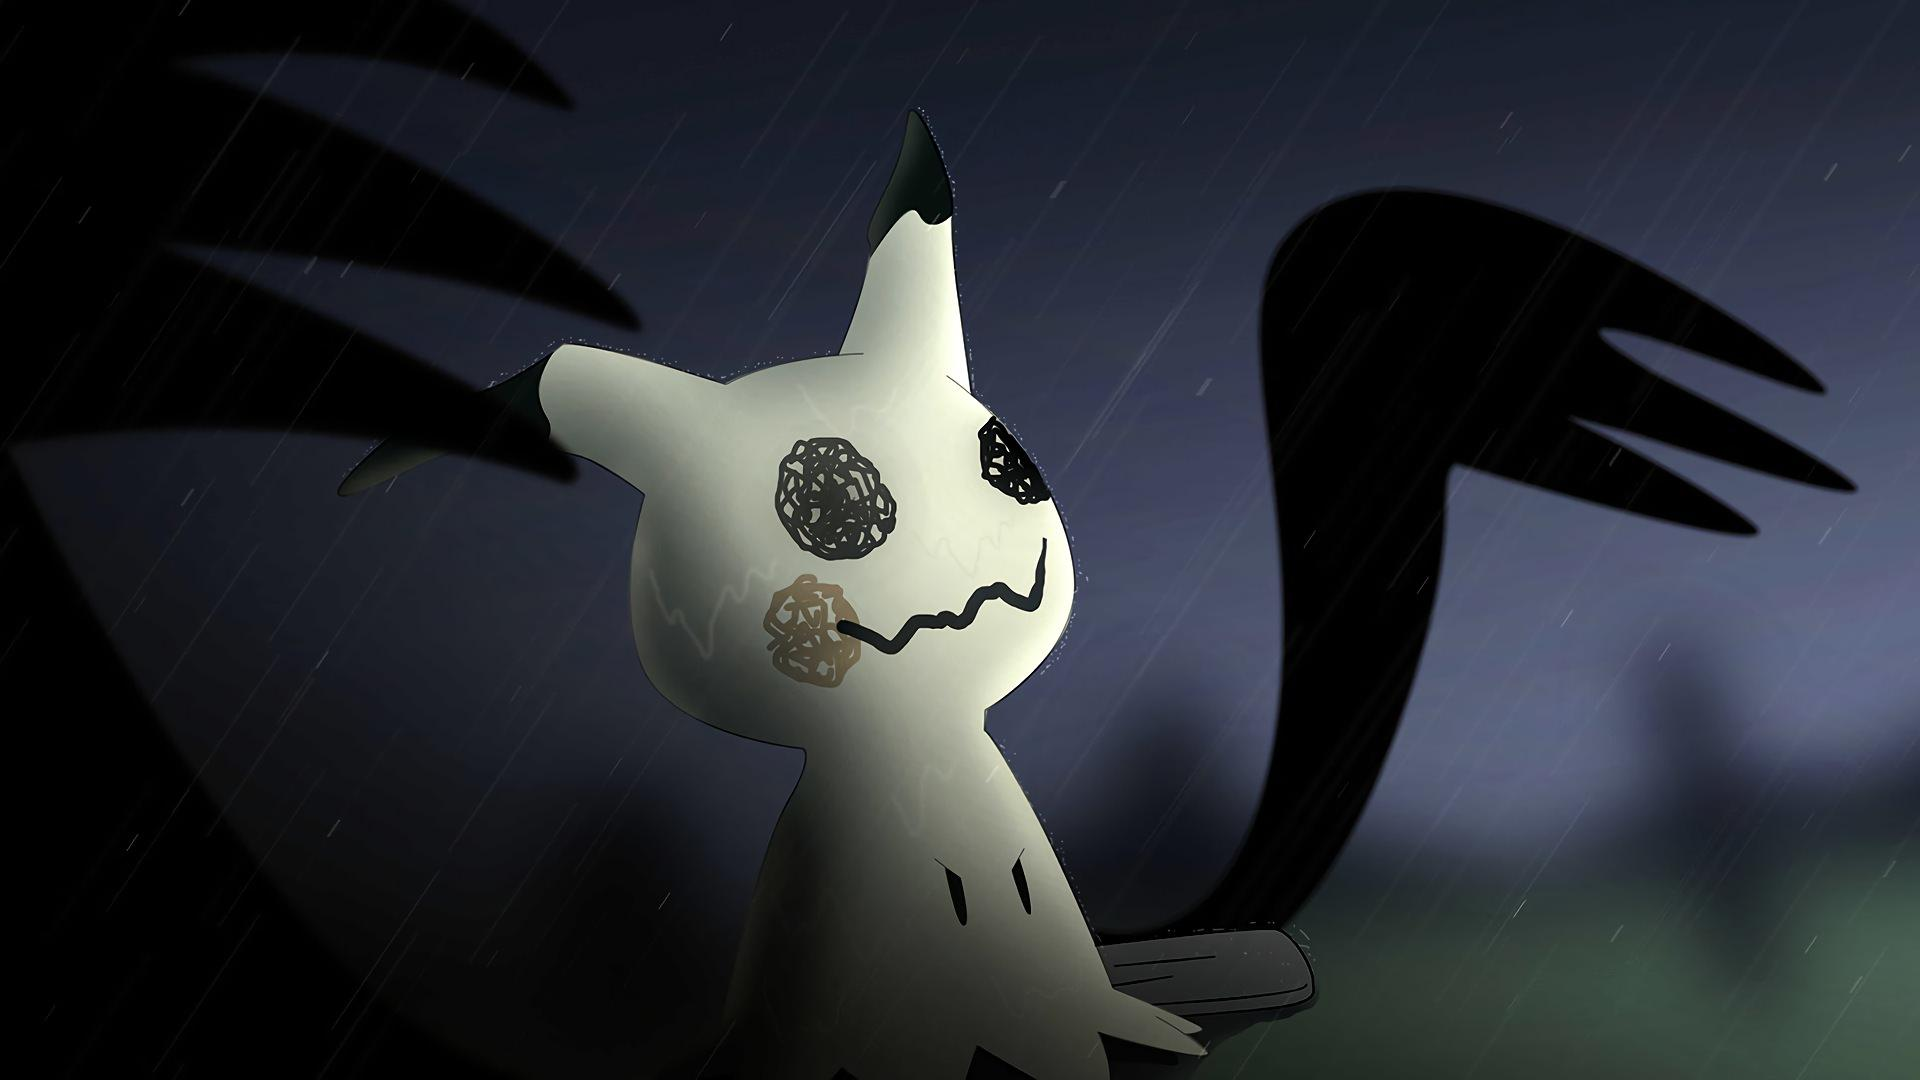 Mimikyu Pokemon Sun and Moon Wallpaper #14778